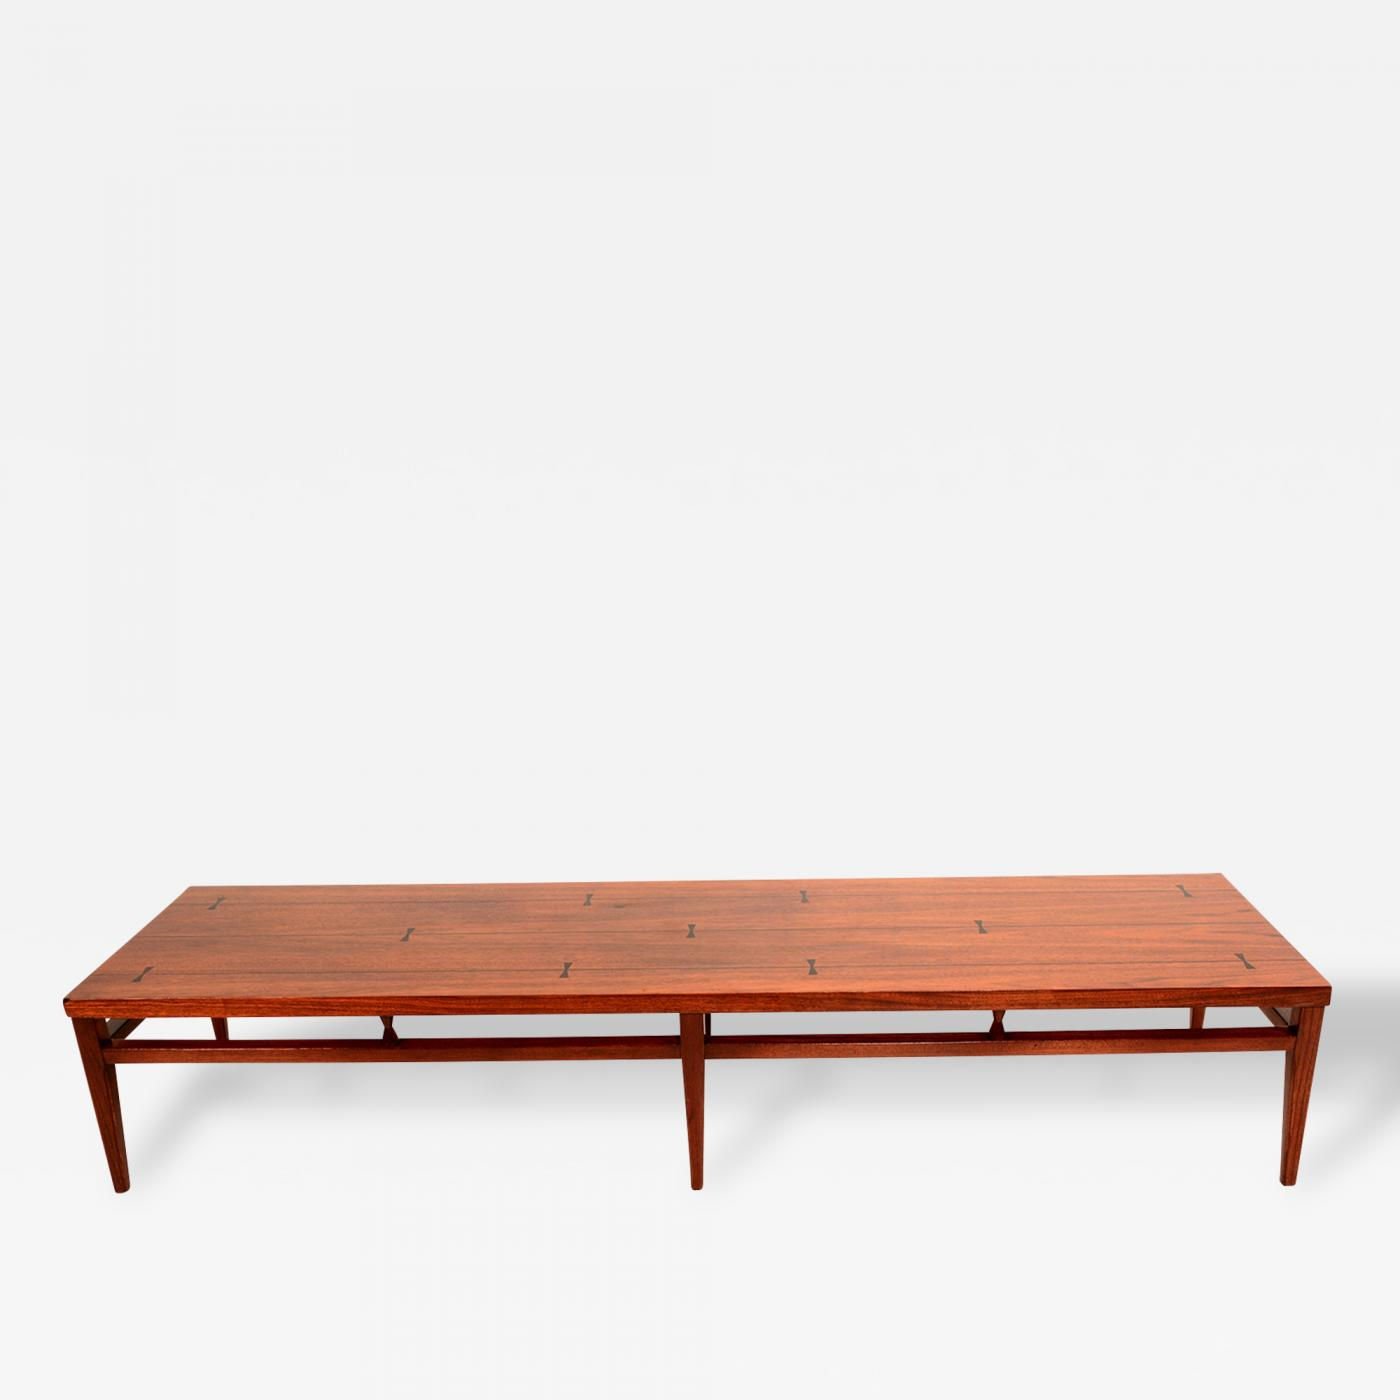 Listings / Furniture / Tables / Coffee Tables · Lane Furniture Mid Century  ... - Lane Furniture - Mid Century Coffee Table By Lane, Paul McCobb Era